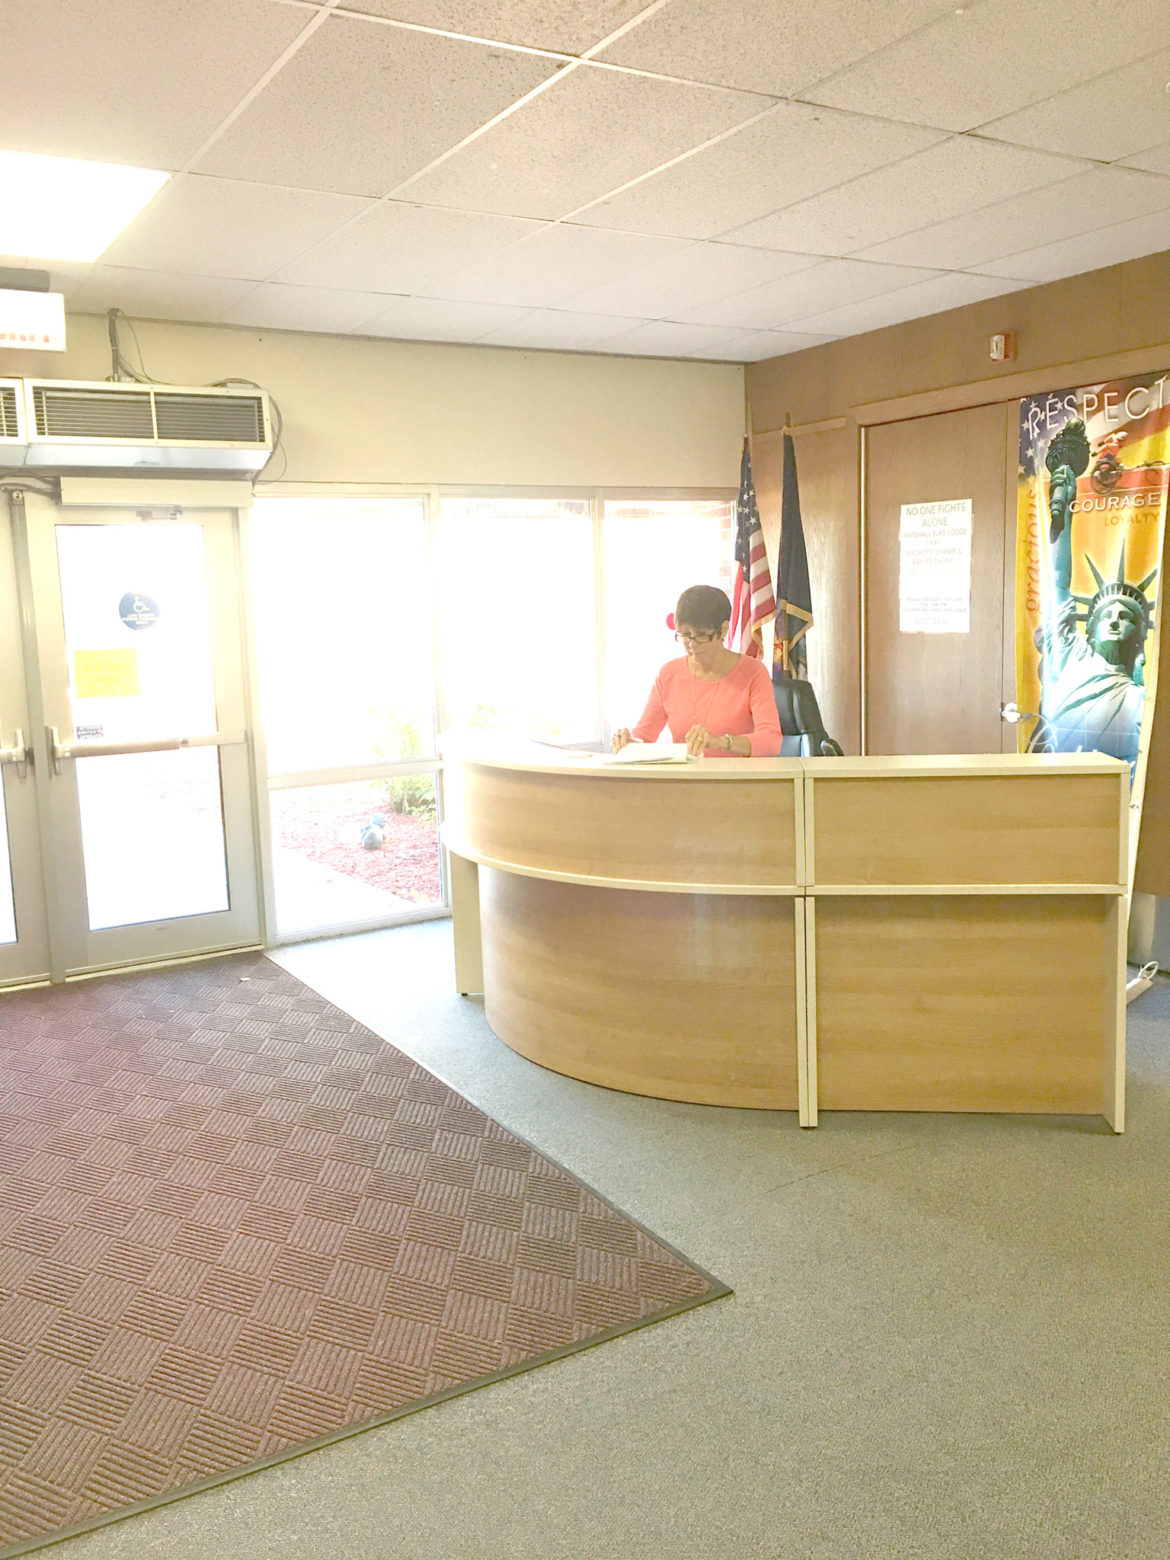 A desk has been set up at the front of the Elementary School for security and tax processing. All visitors must check in at the front desk or office when entering either the high school or elementary school. This new procedure is designed to improve security at the facilities.